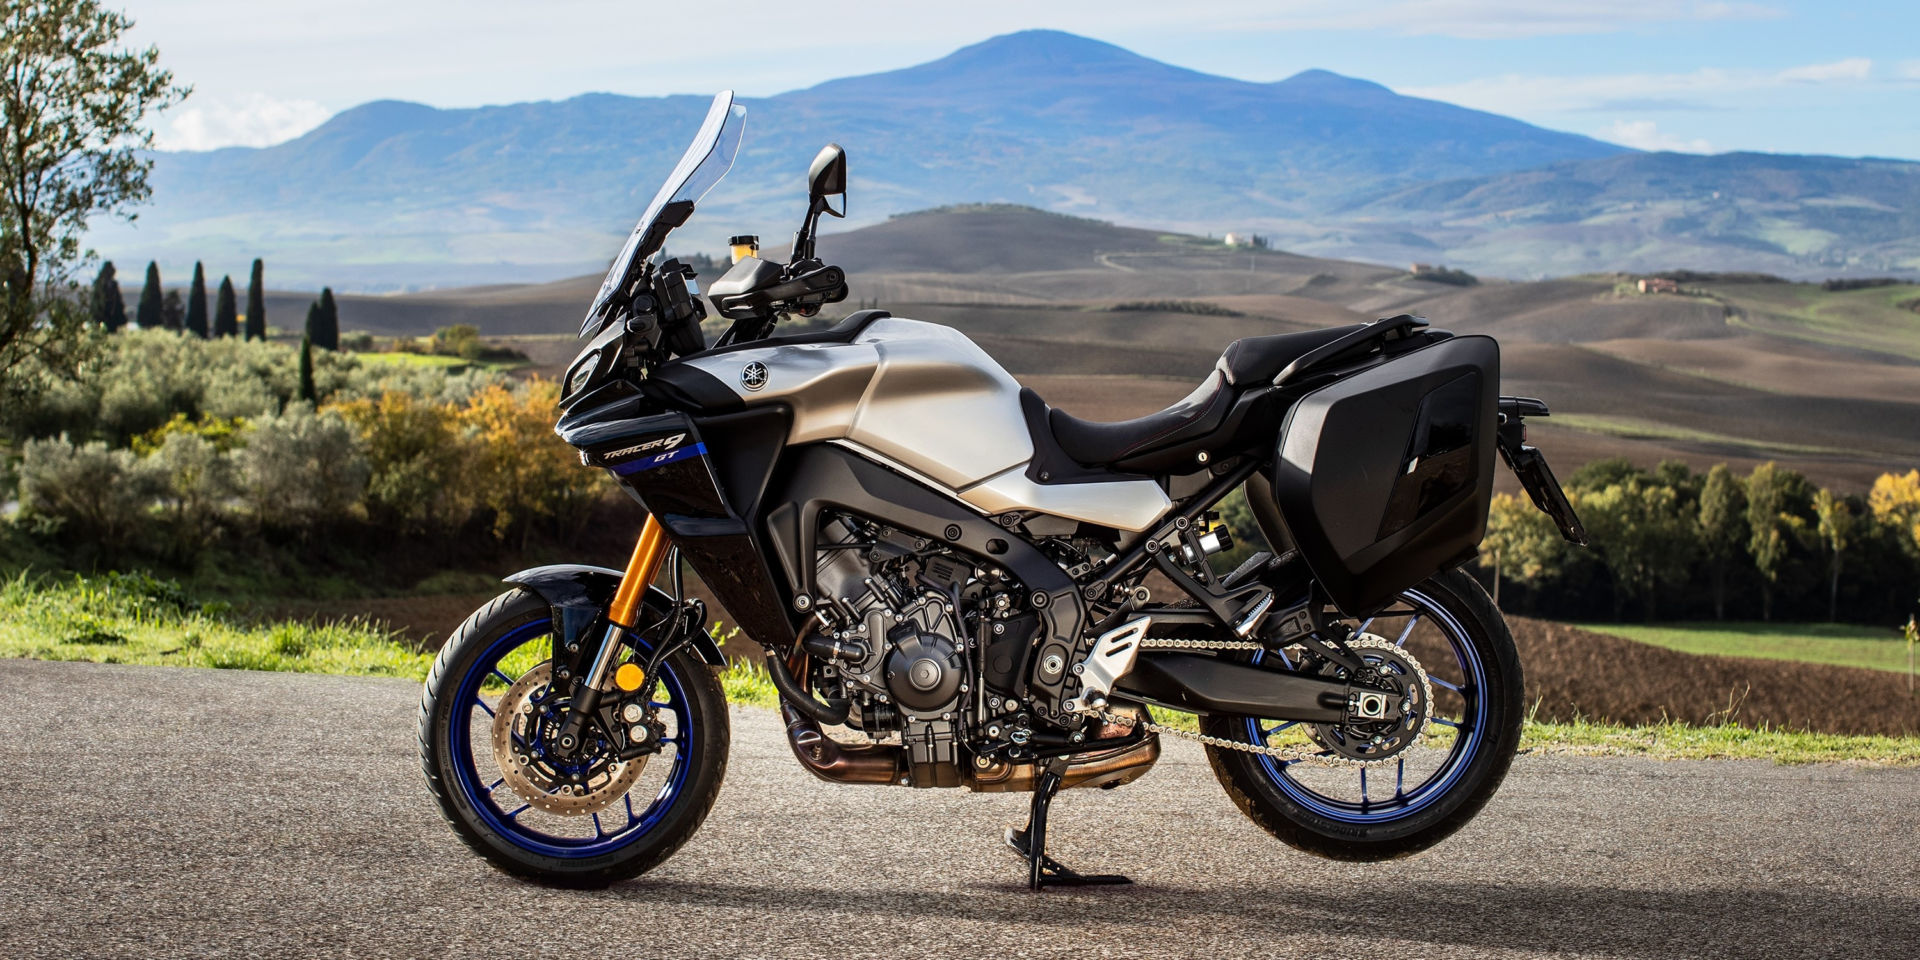 New frame, new bodywork, new engine, and electronic suspension. The 2021 Yamaha Tracer 9 GT is the sport-tourer it always was, just more advanced and more capable. Photo courtesy Yamaha.